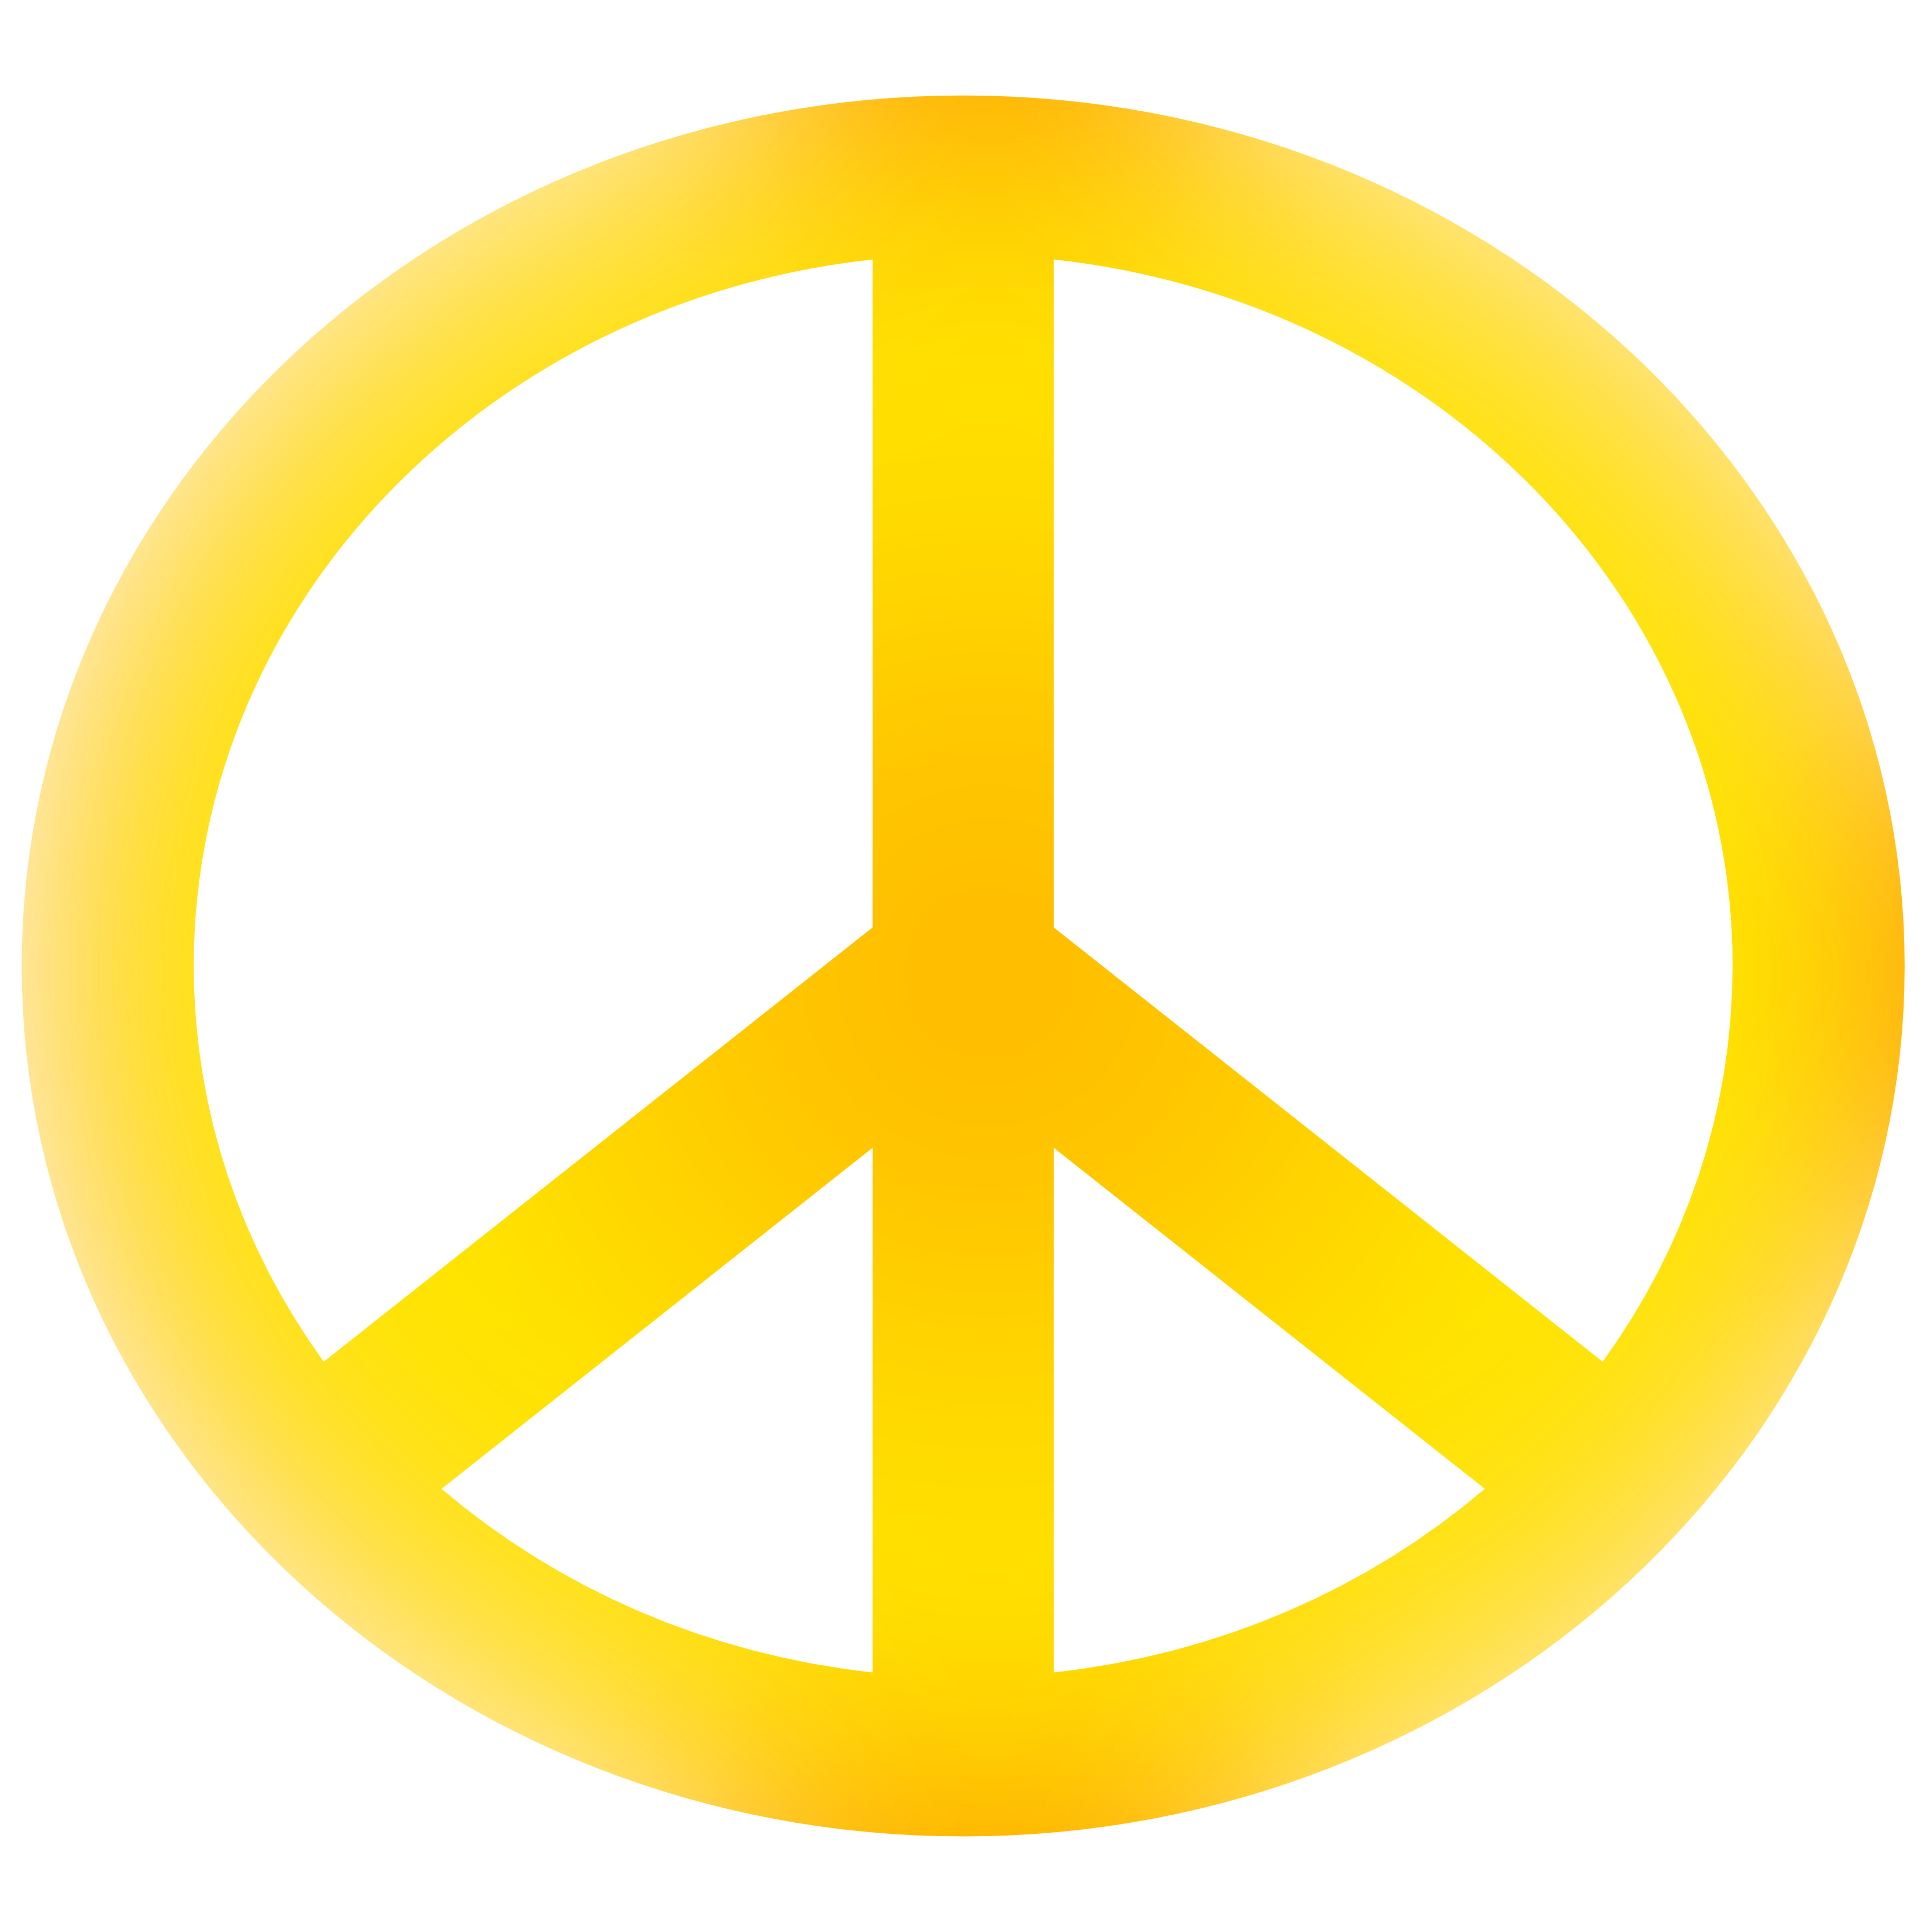 Peace Signs Clip Art Peace Sign 23 Chris-Peace Signs Clip Art Peace Sign 23 Christmas Xmas Peace On Earth Peace-16